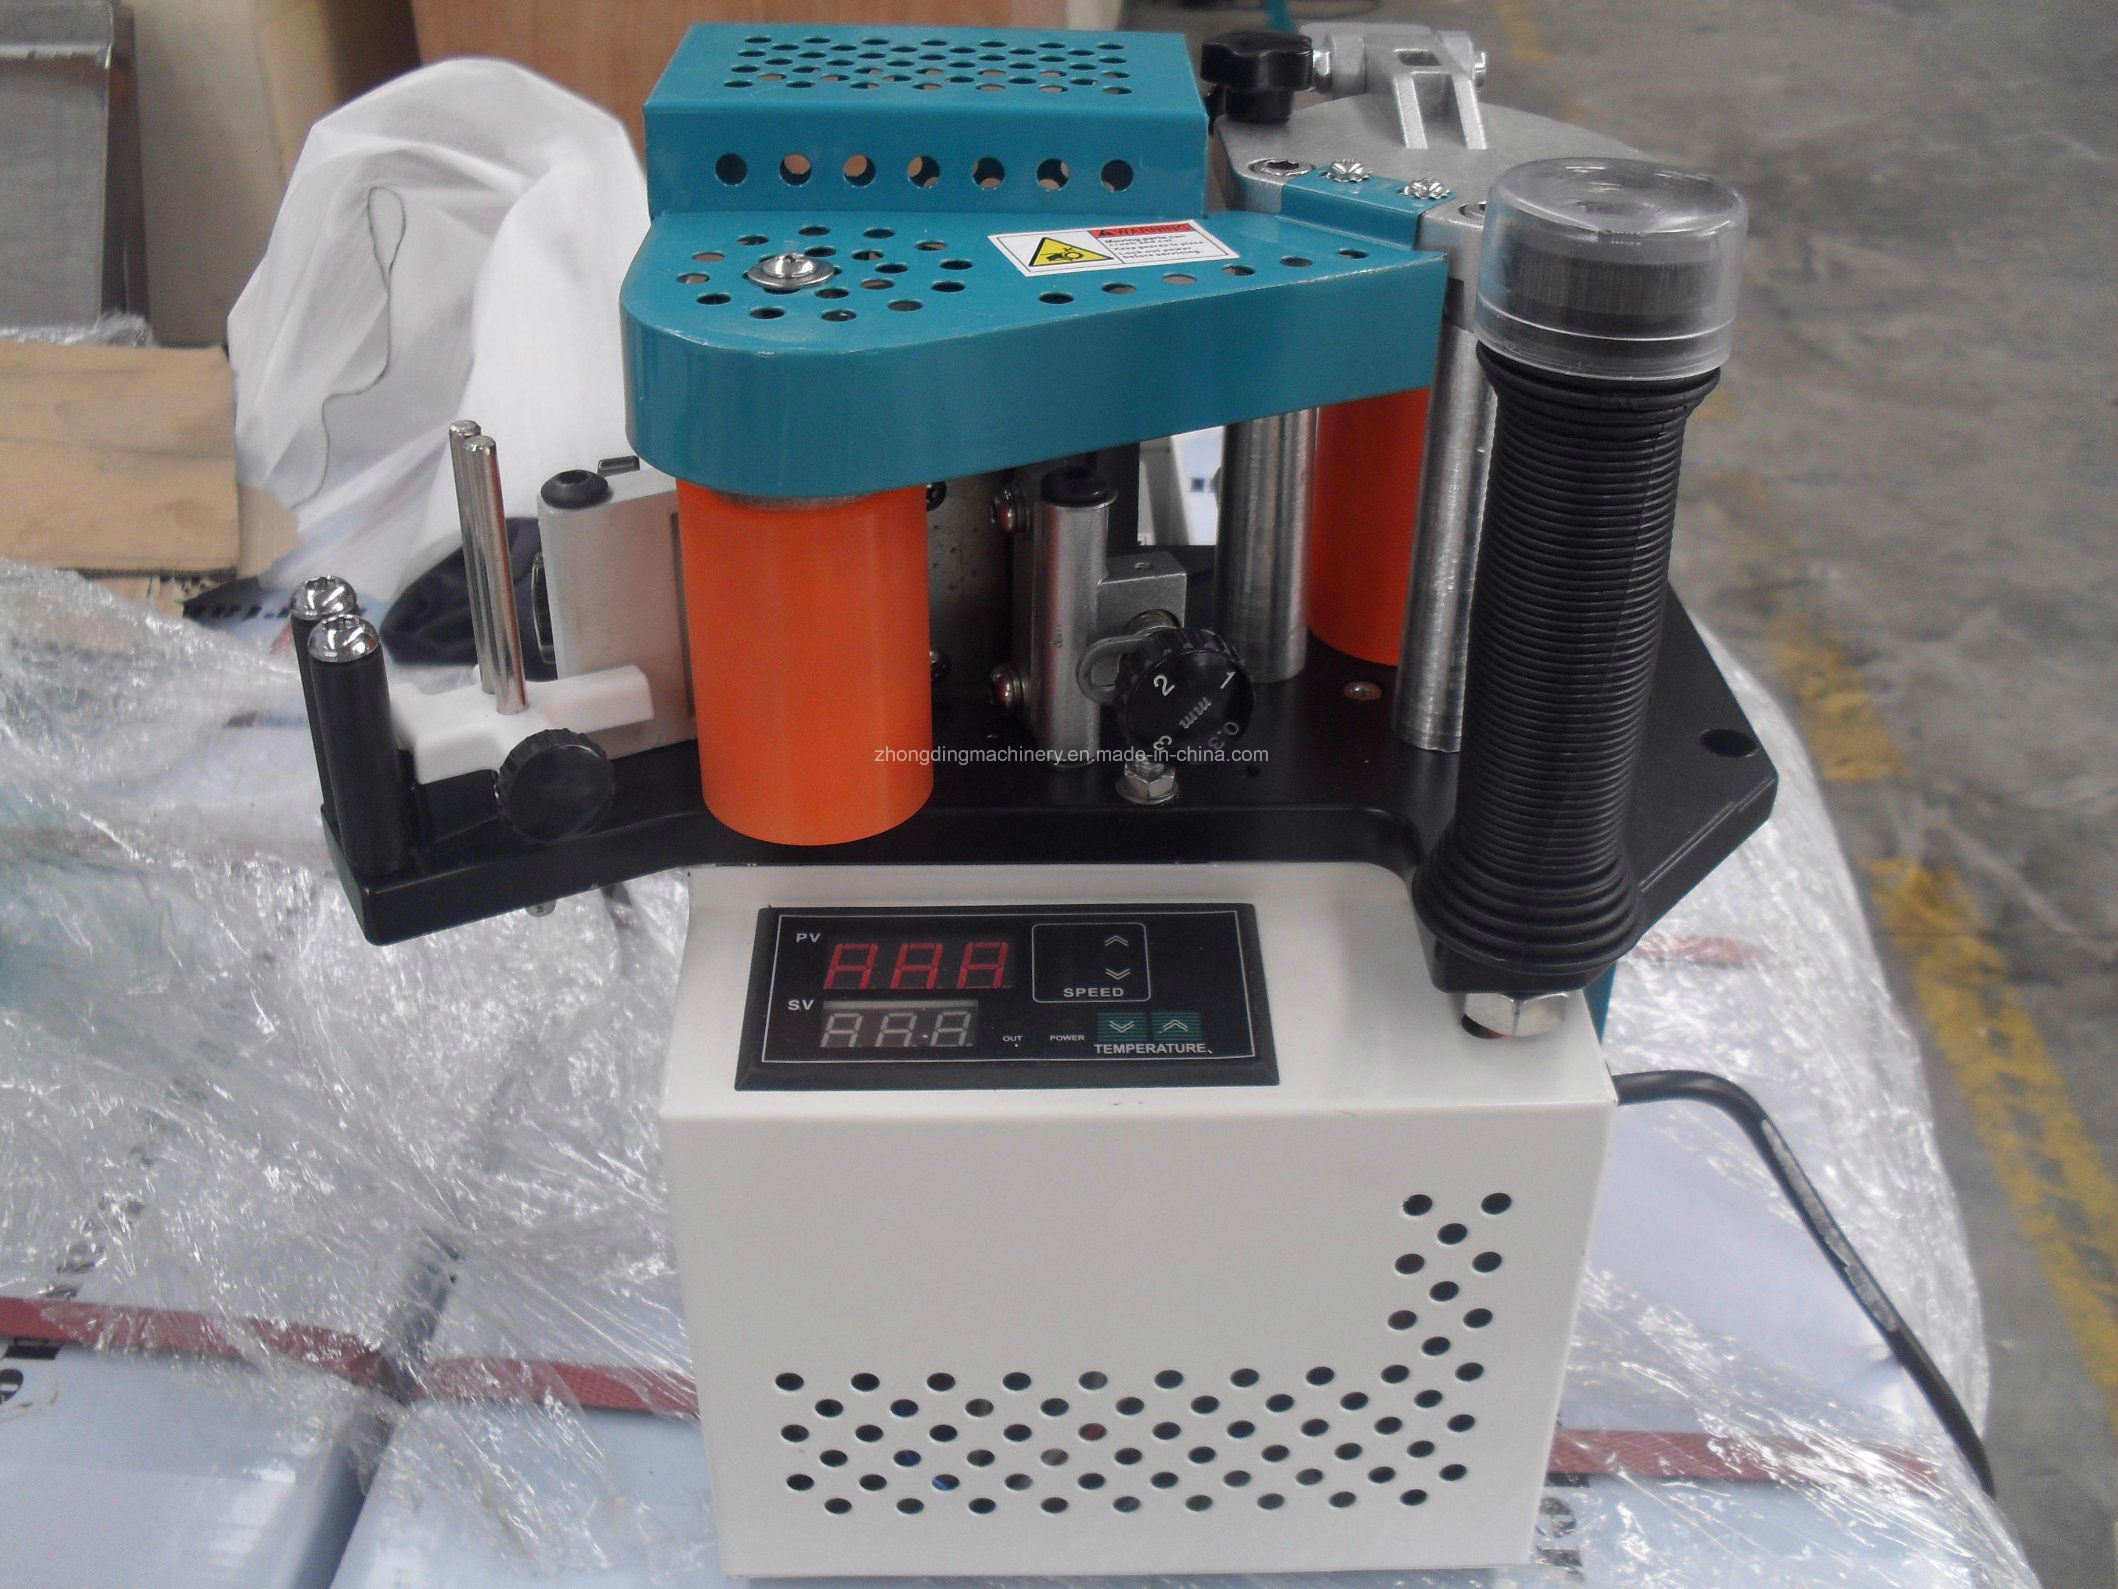 China Jbt90 Small Edge Banding Machine for Sale Photos